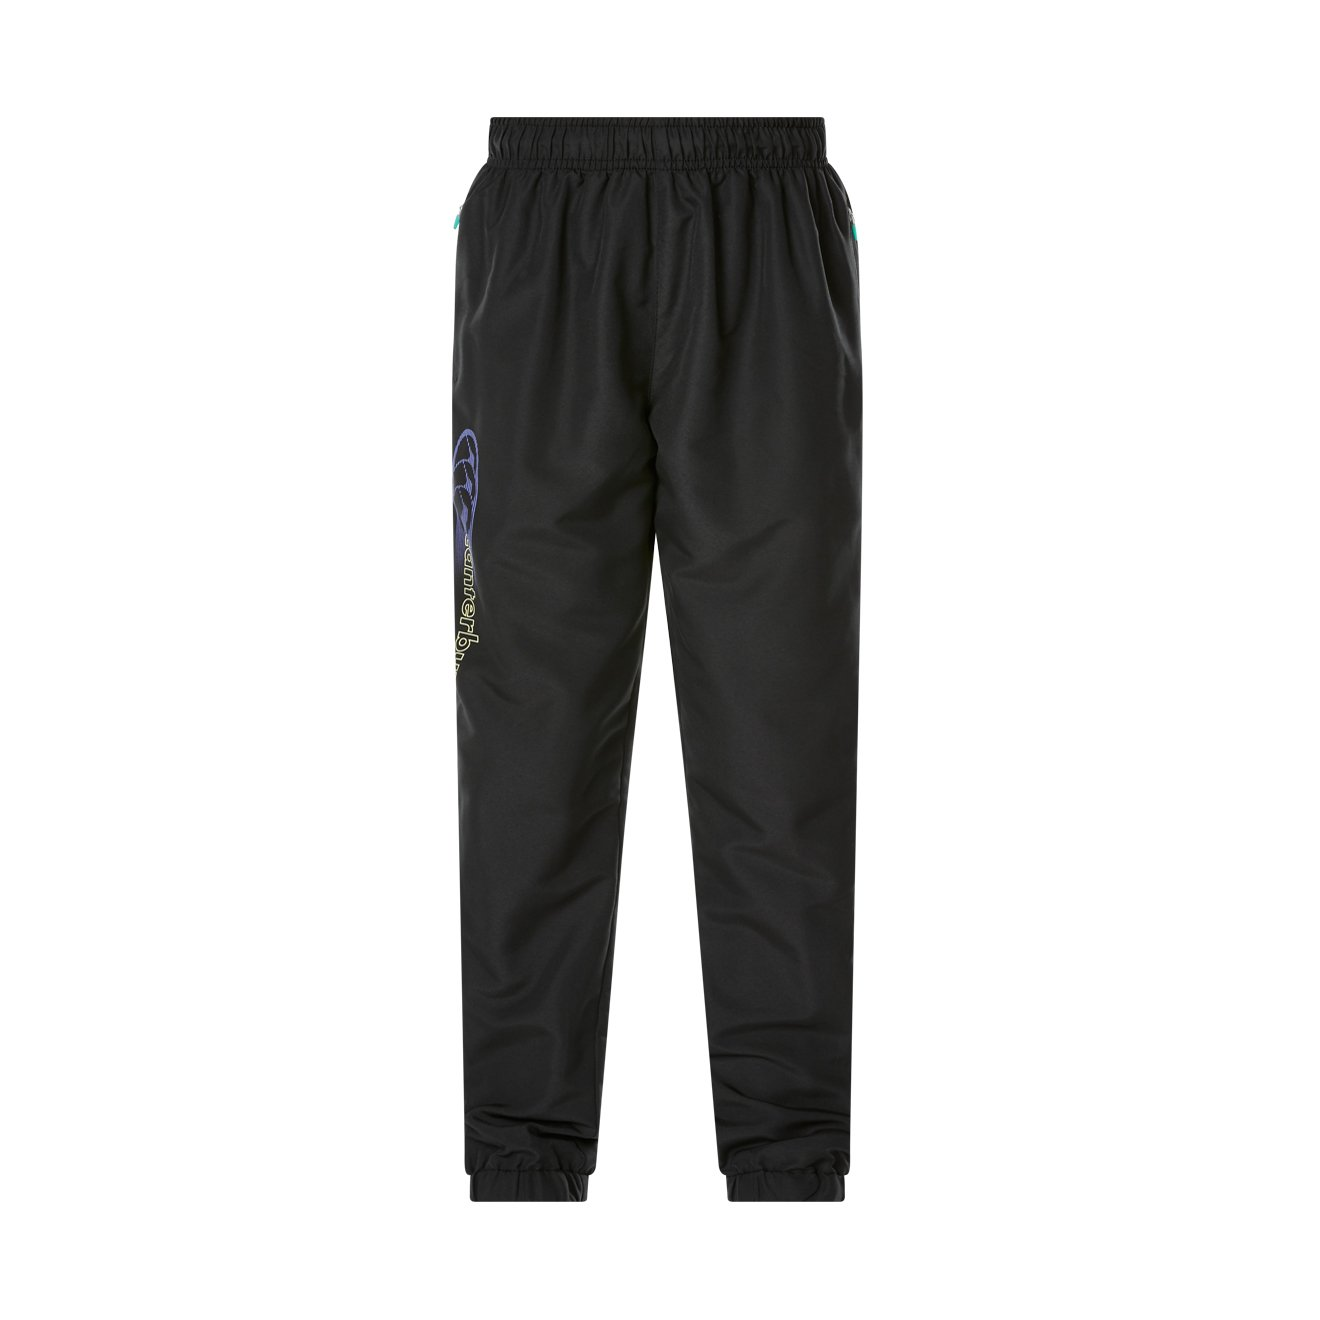 Canterbury Girls' Tapered Cuffed Woven Pant Jogging Bottoms